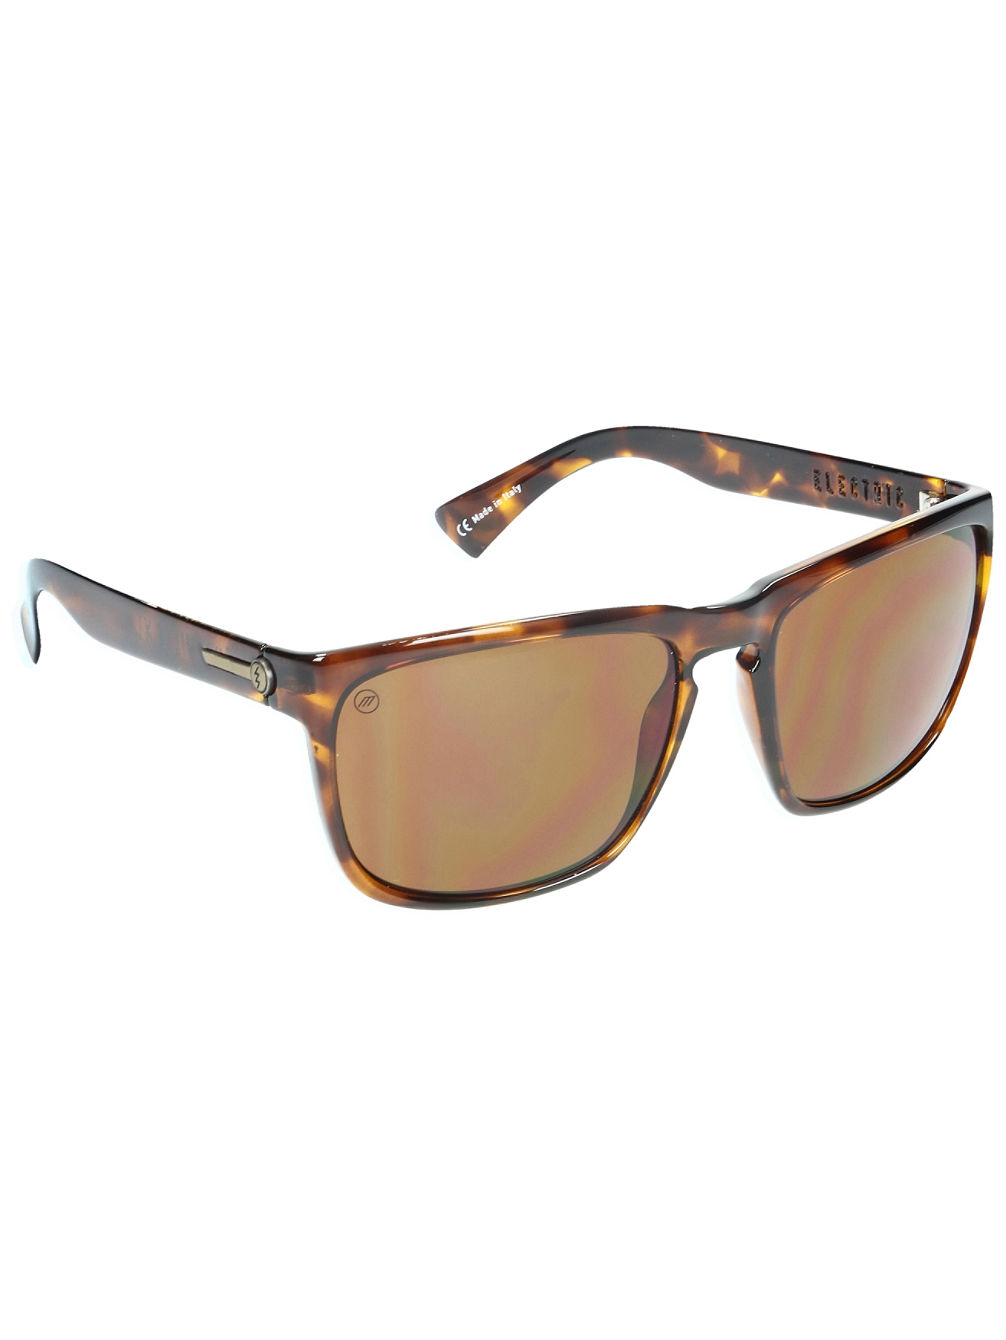 Knoxville XL Tortoise Shell